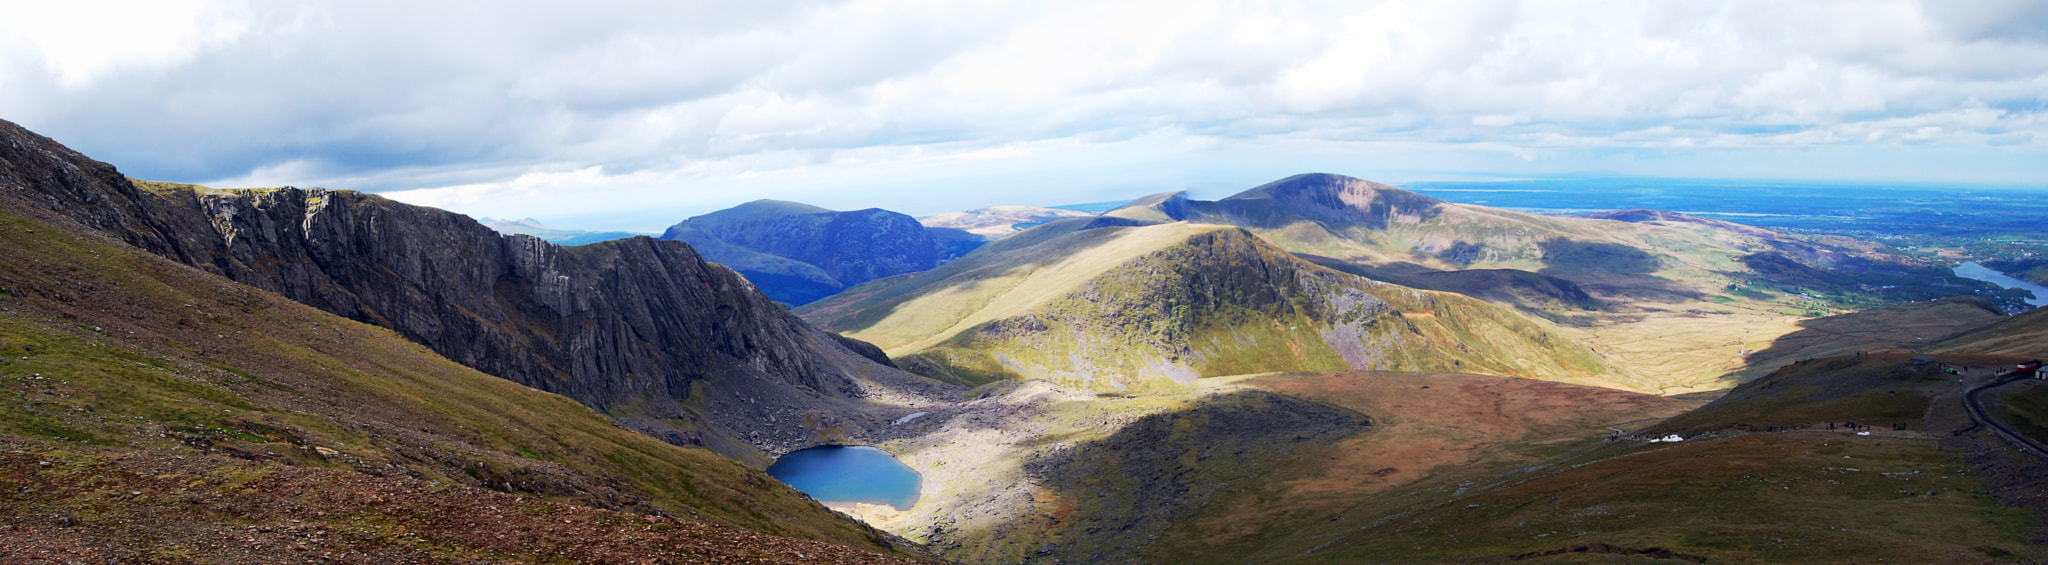 Photograph Panoramic view from Snowdon by Neil Bryars on 500px